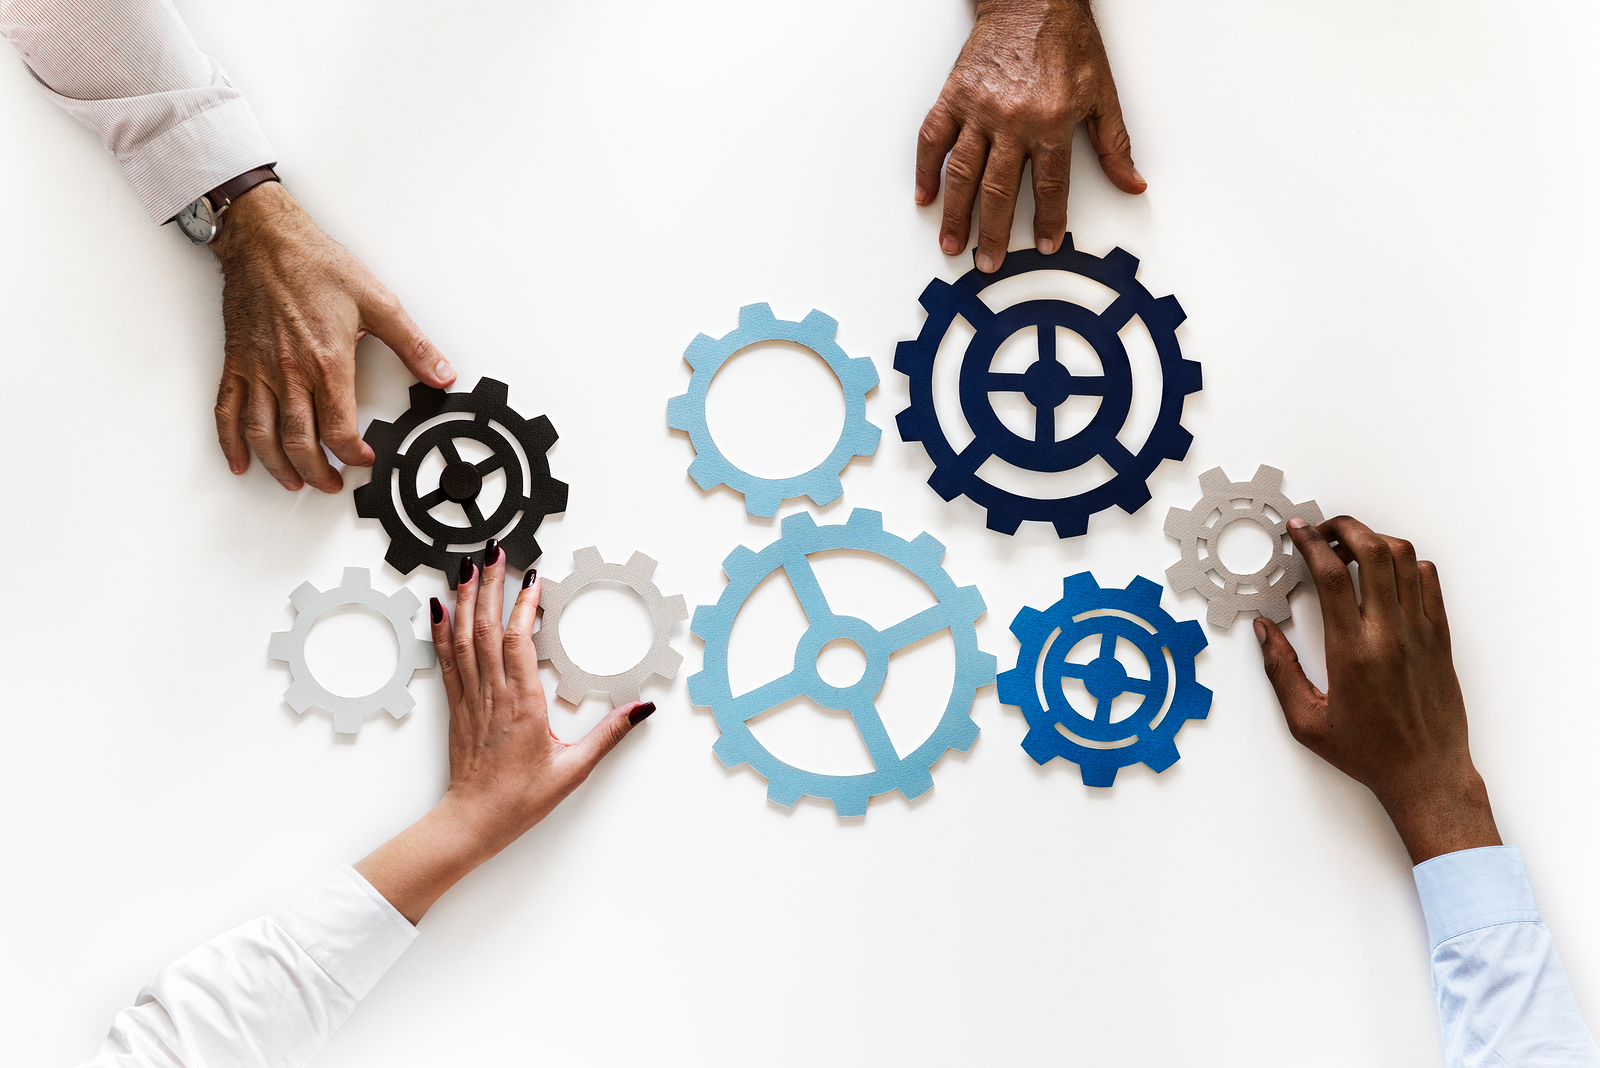 Hands with support gears isolated on white background